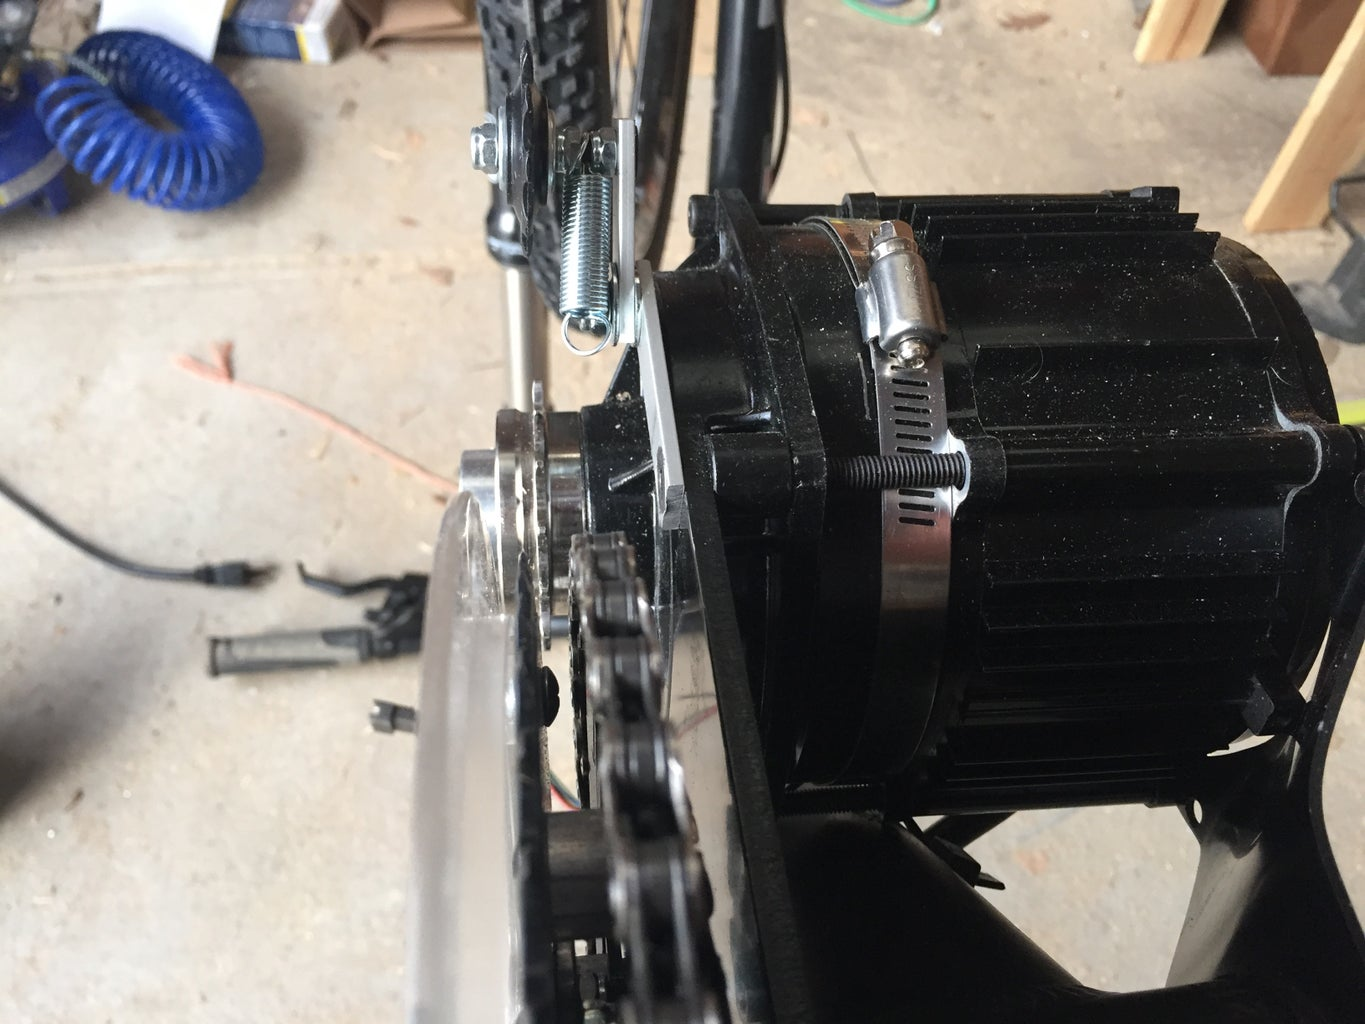 Assembly Part 5: Motor, Cranks, and Chains